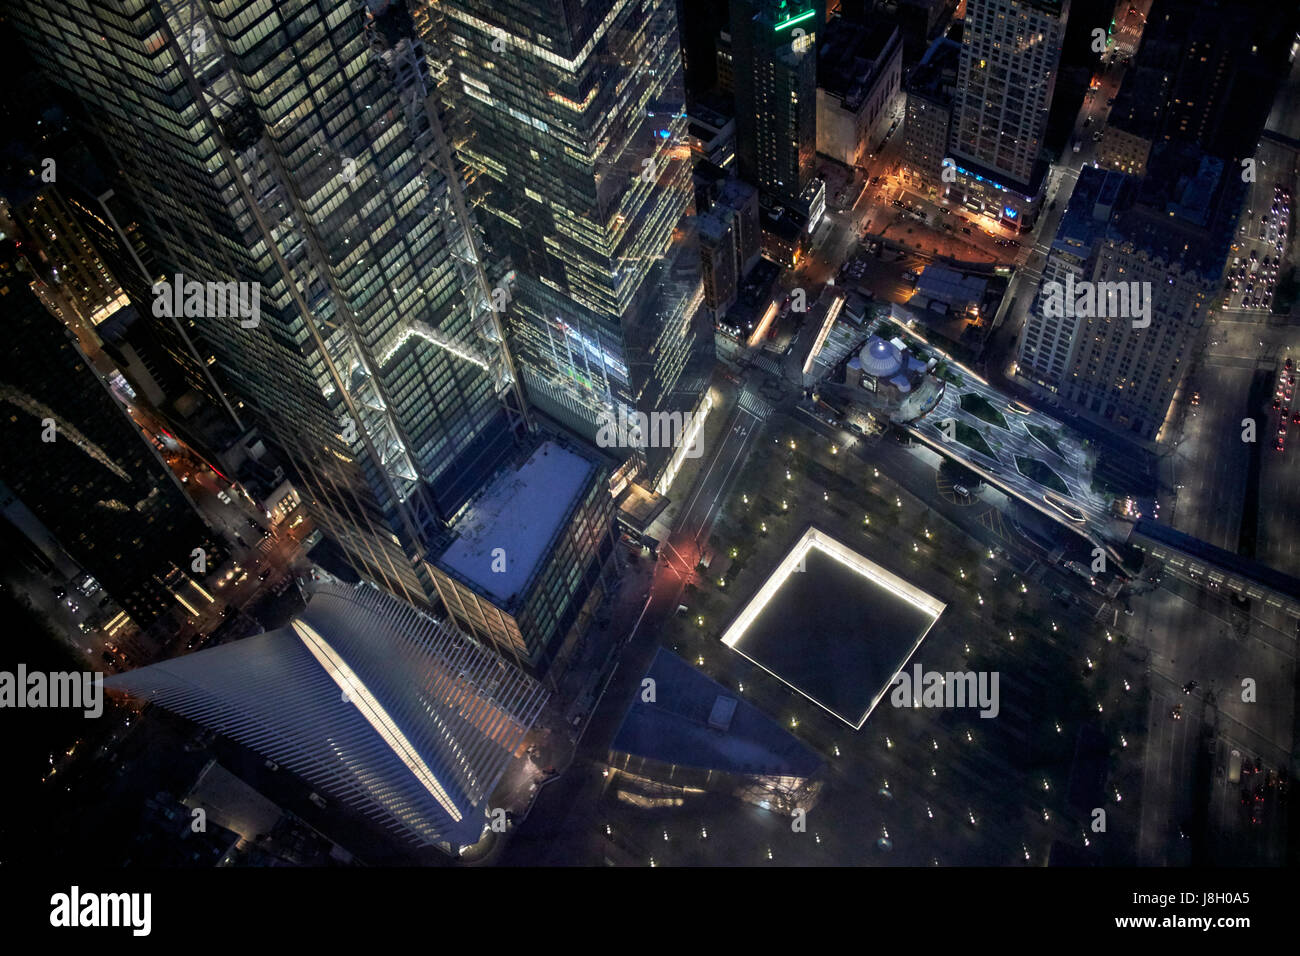 aerial night view of the national september 11 memorial museum and oculus transport hub New York City USA - Stock Image